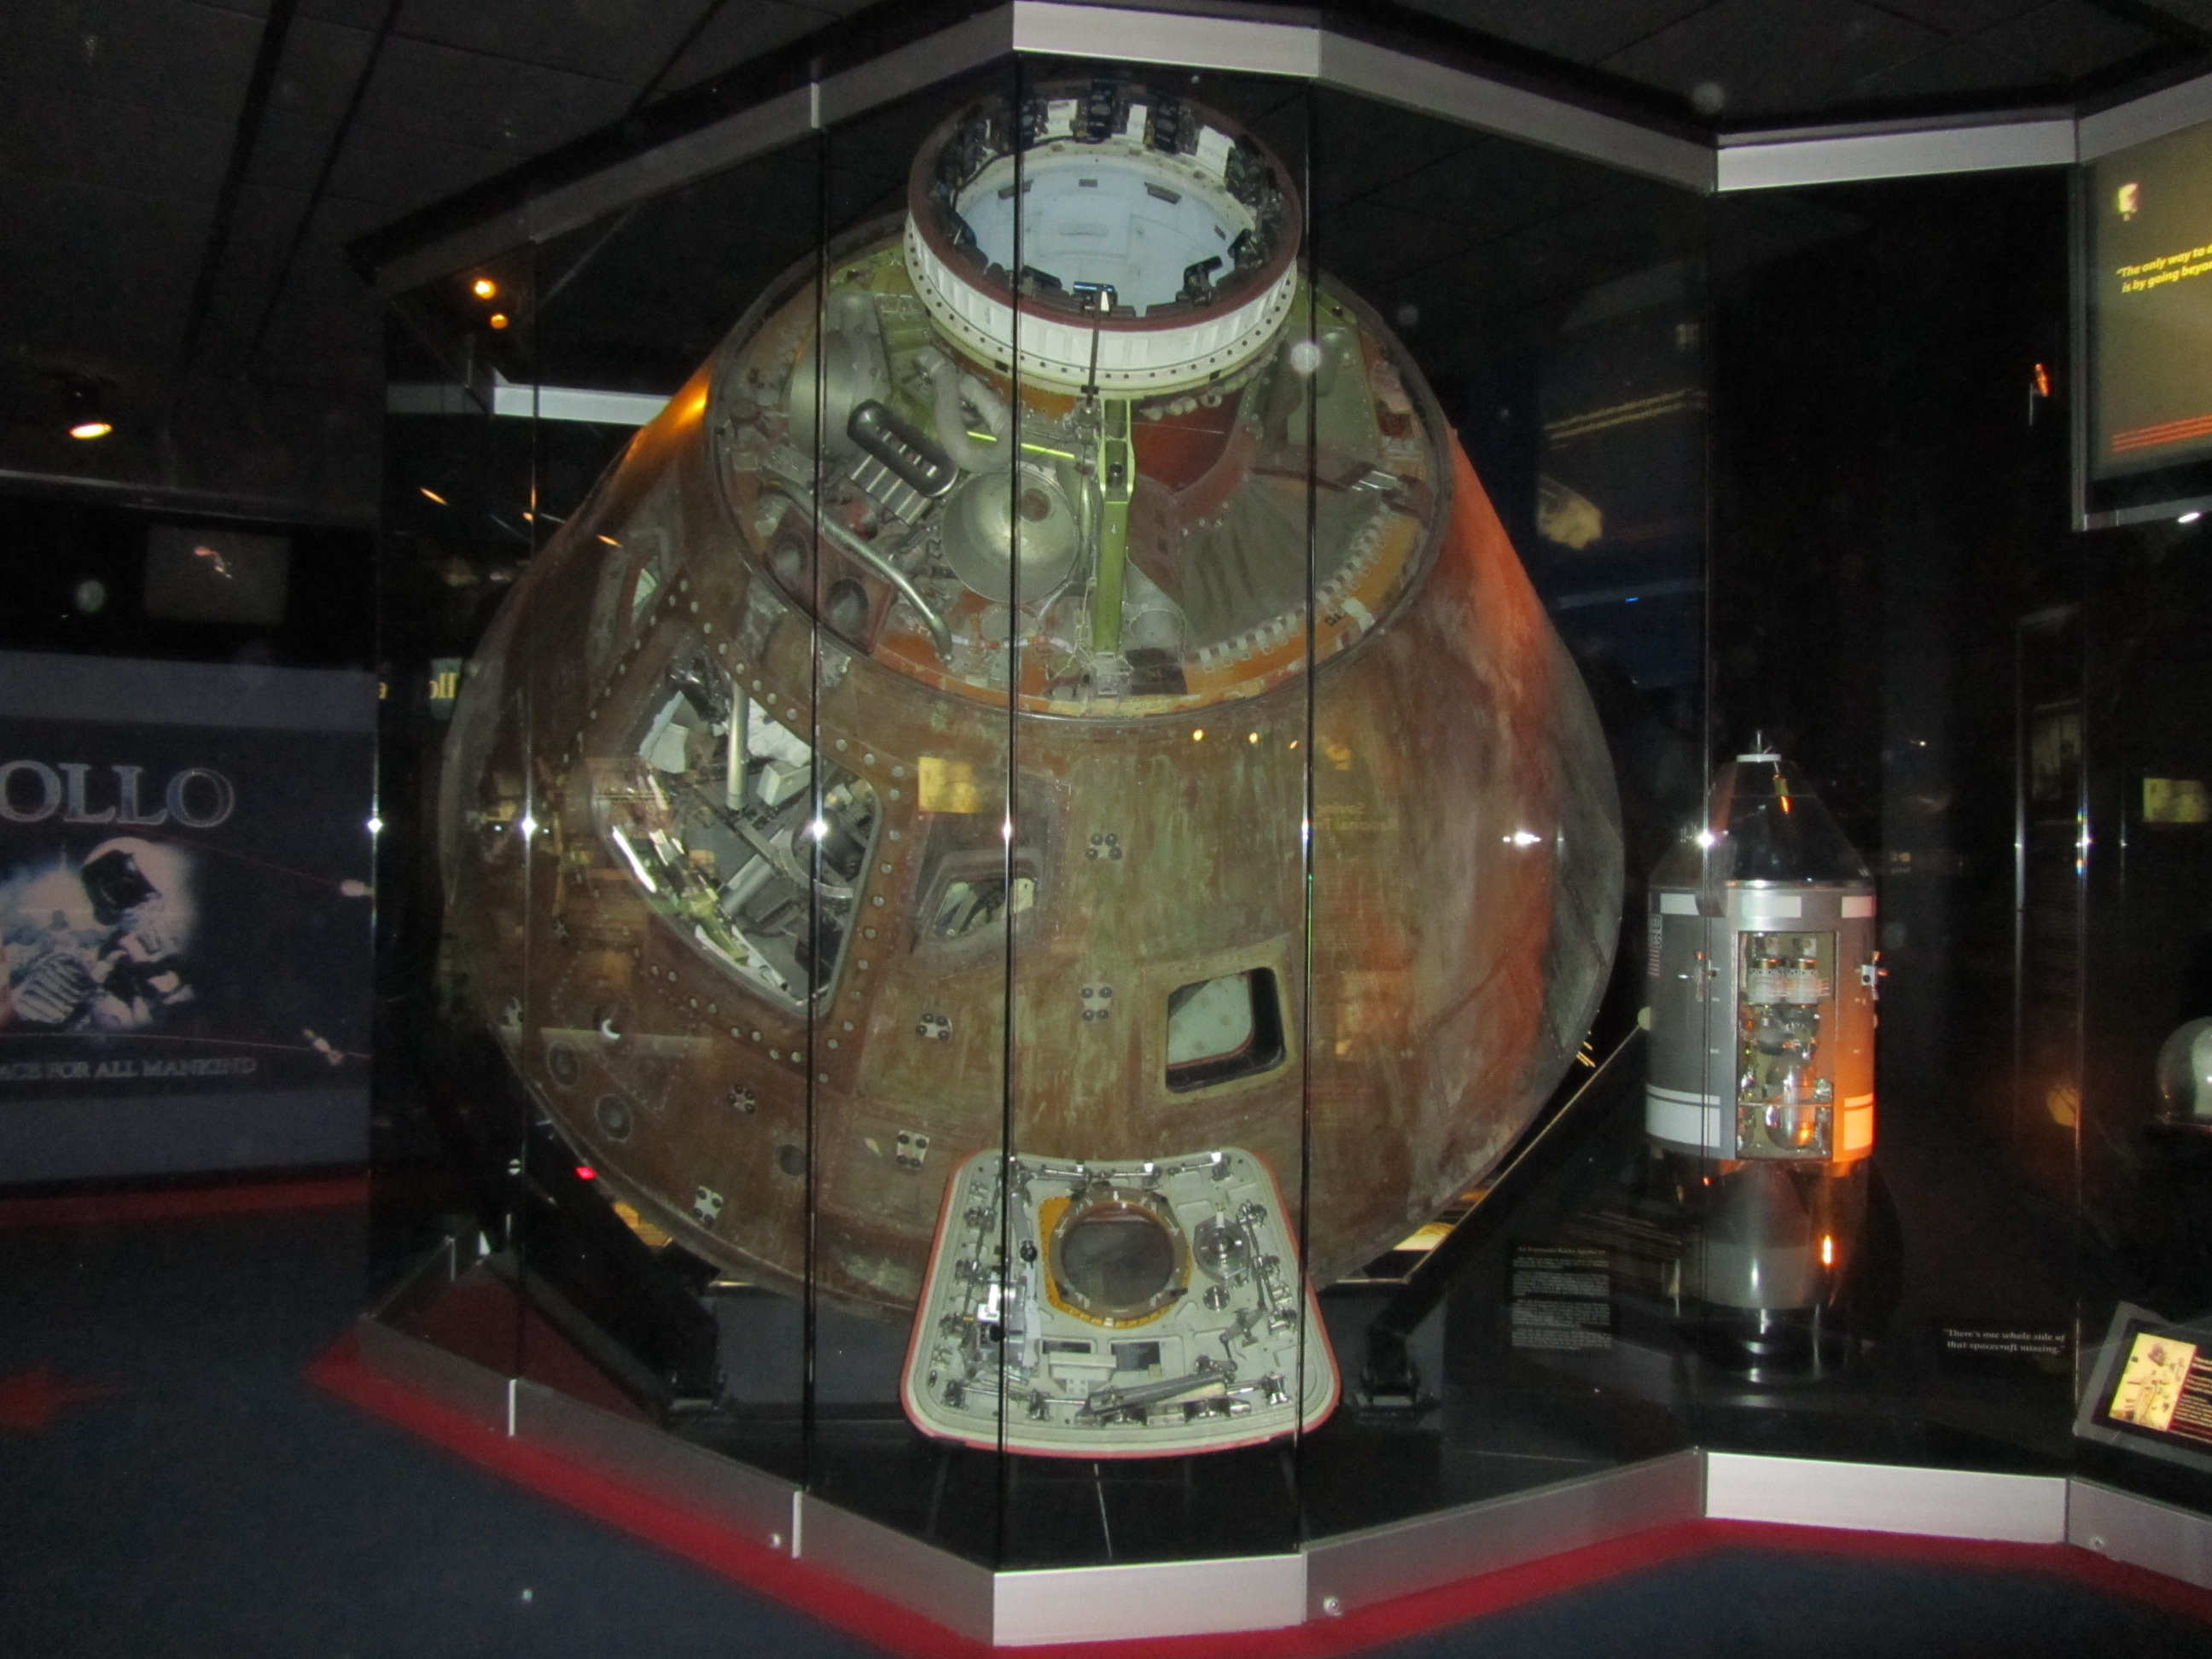 apollo space capsule locations - photo #20